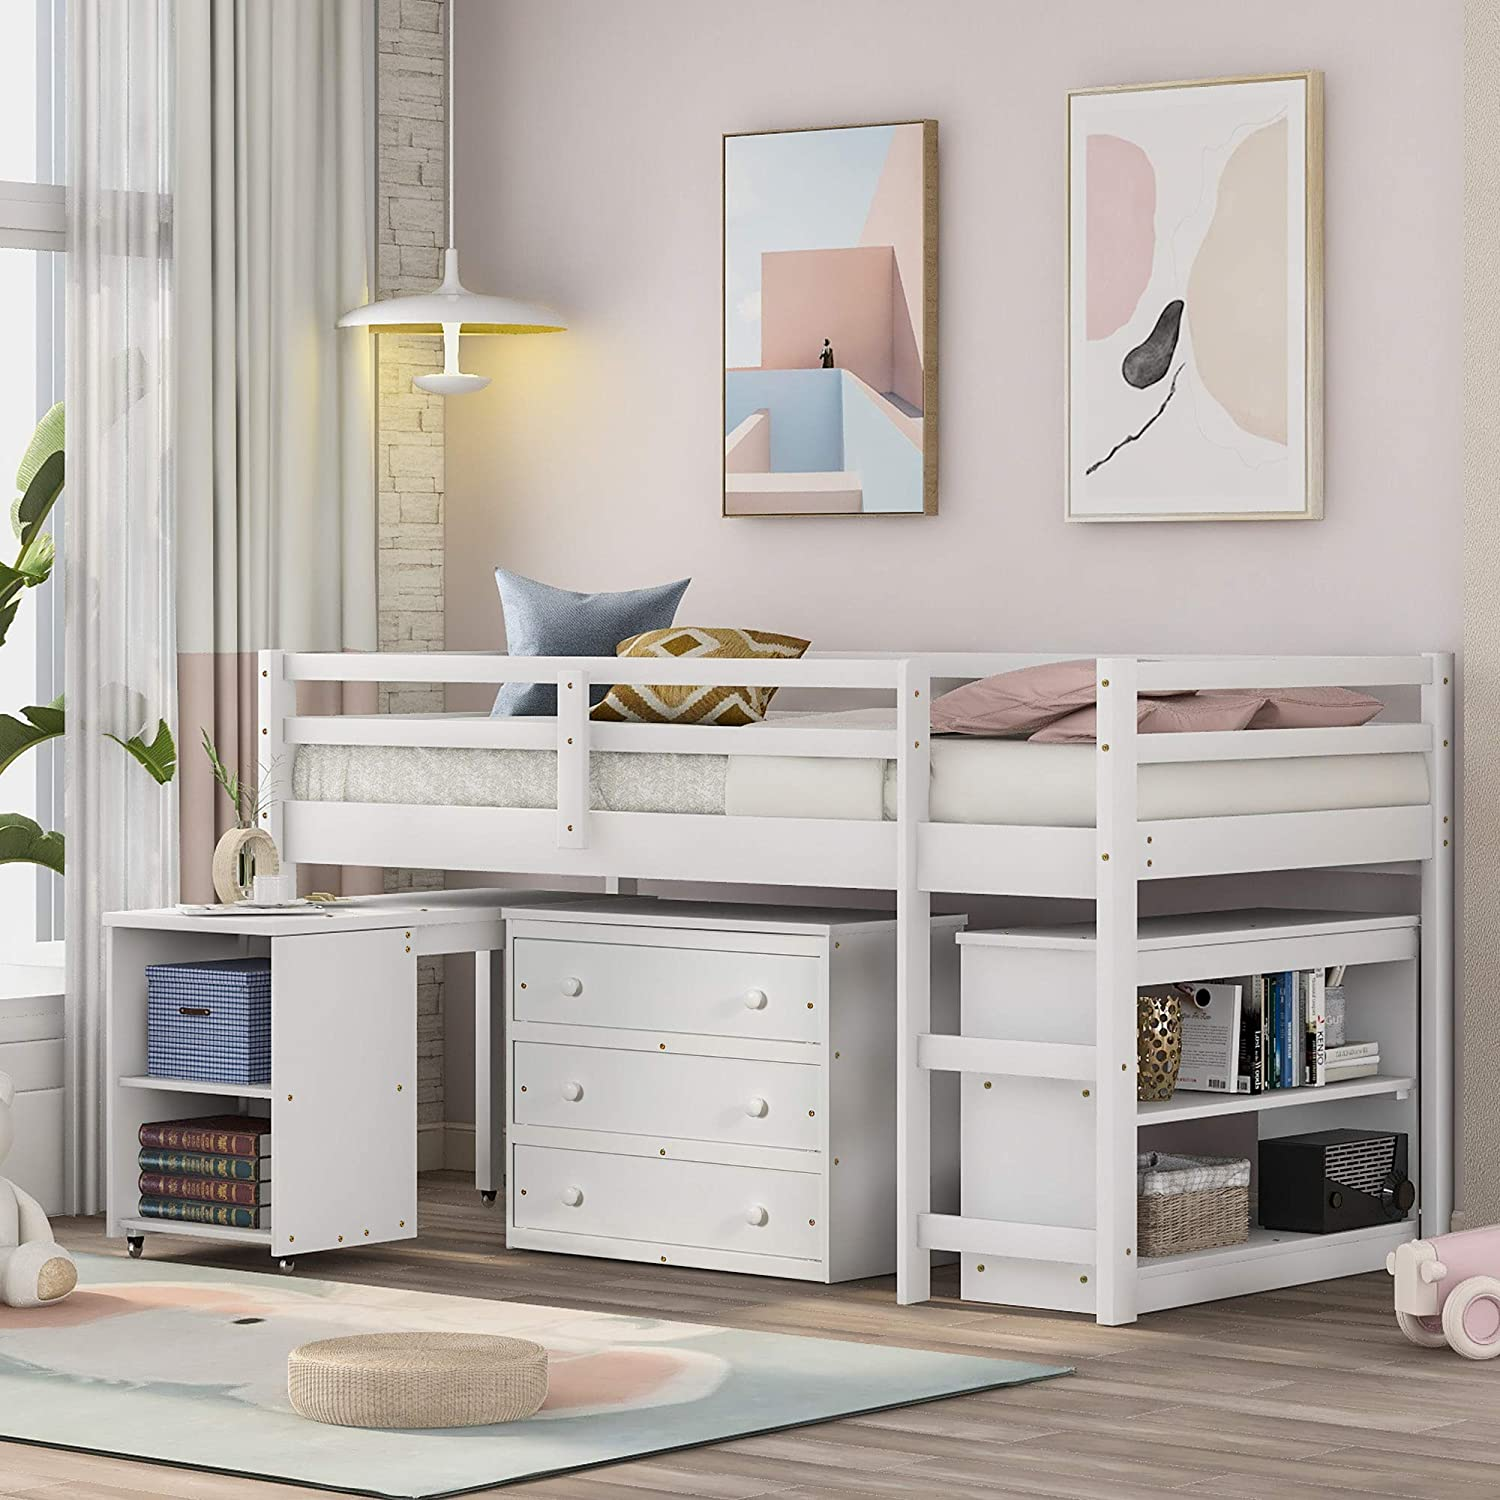 Kids Low Study Twin Loft Bed Frame Superlatite Wood a with Lowest price challenge Cabinet